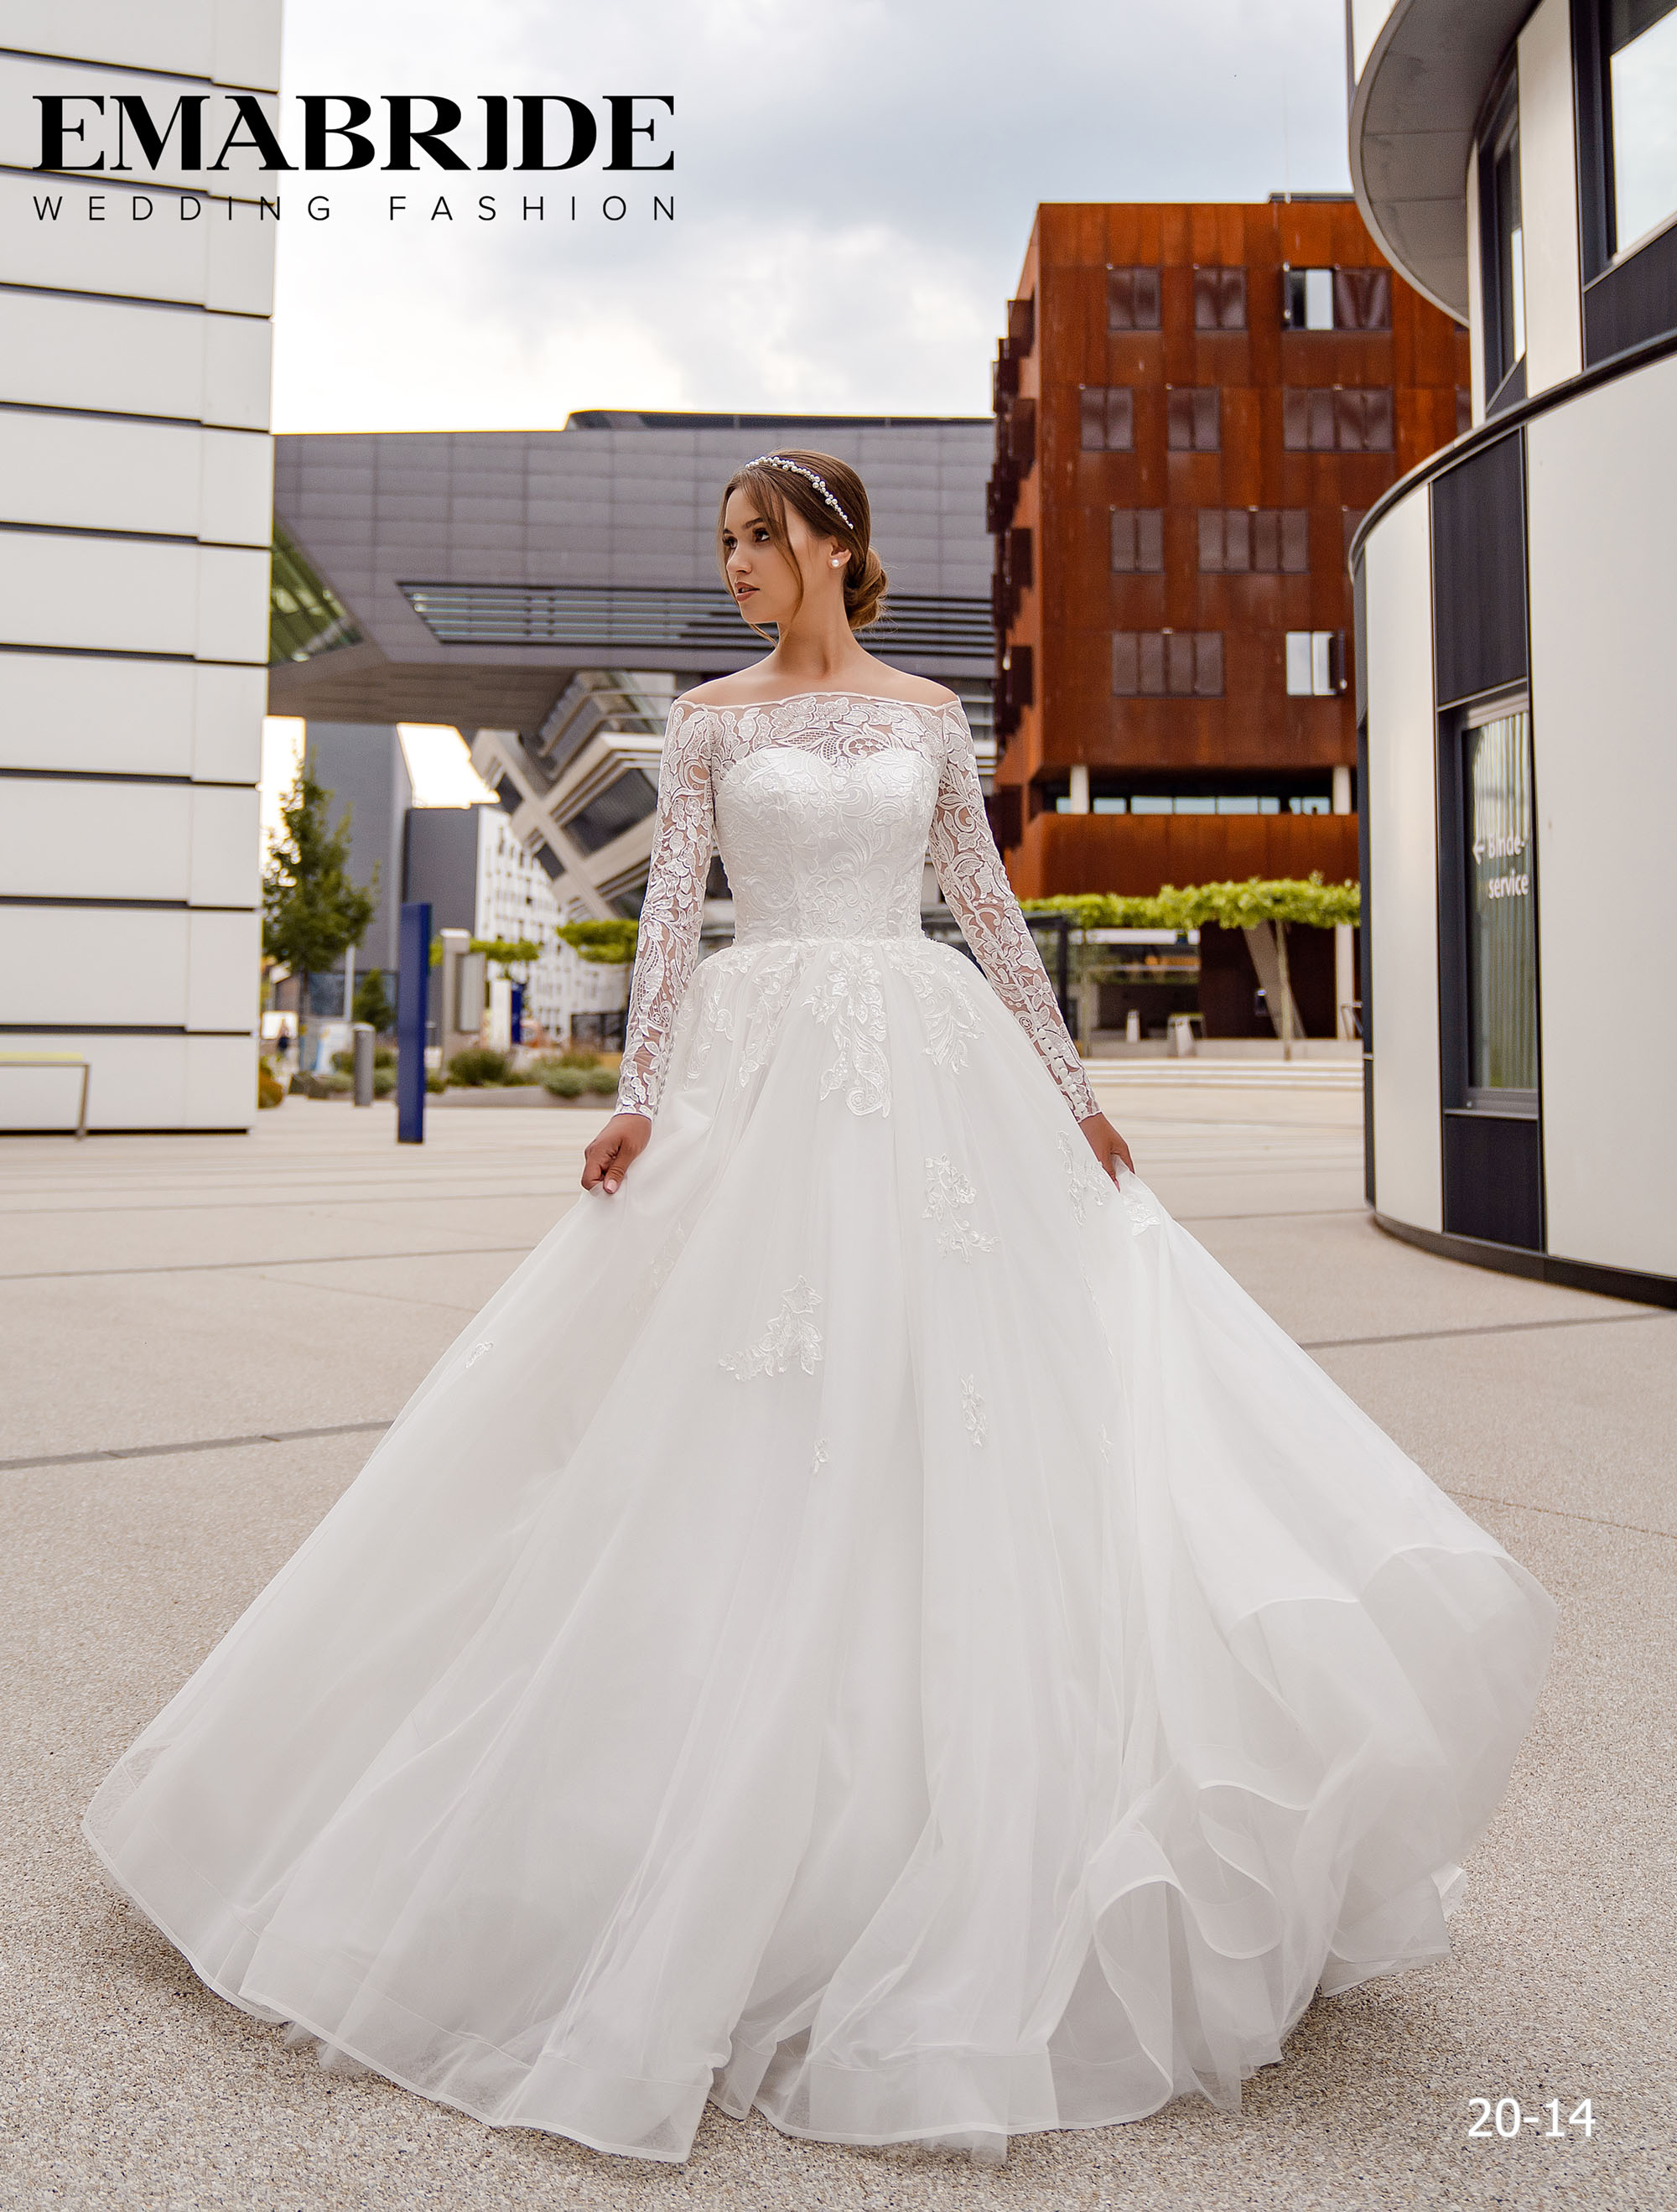 Model 20-14 | Buy wedding dresses wholesale by the ukrainian manufacturer Emabride